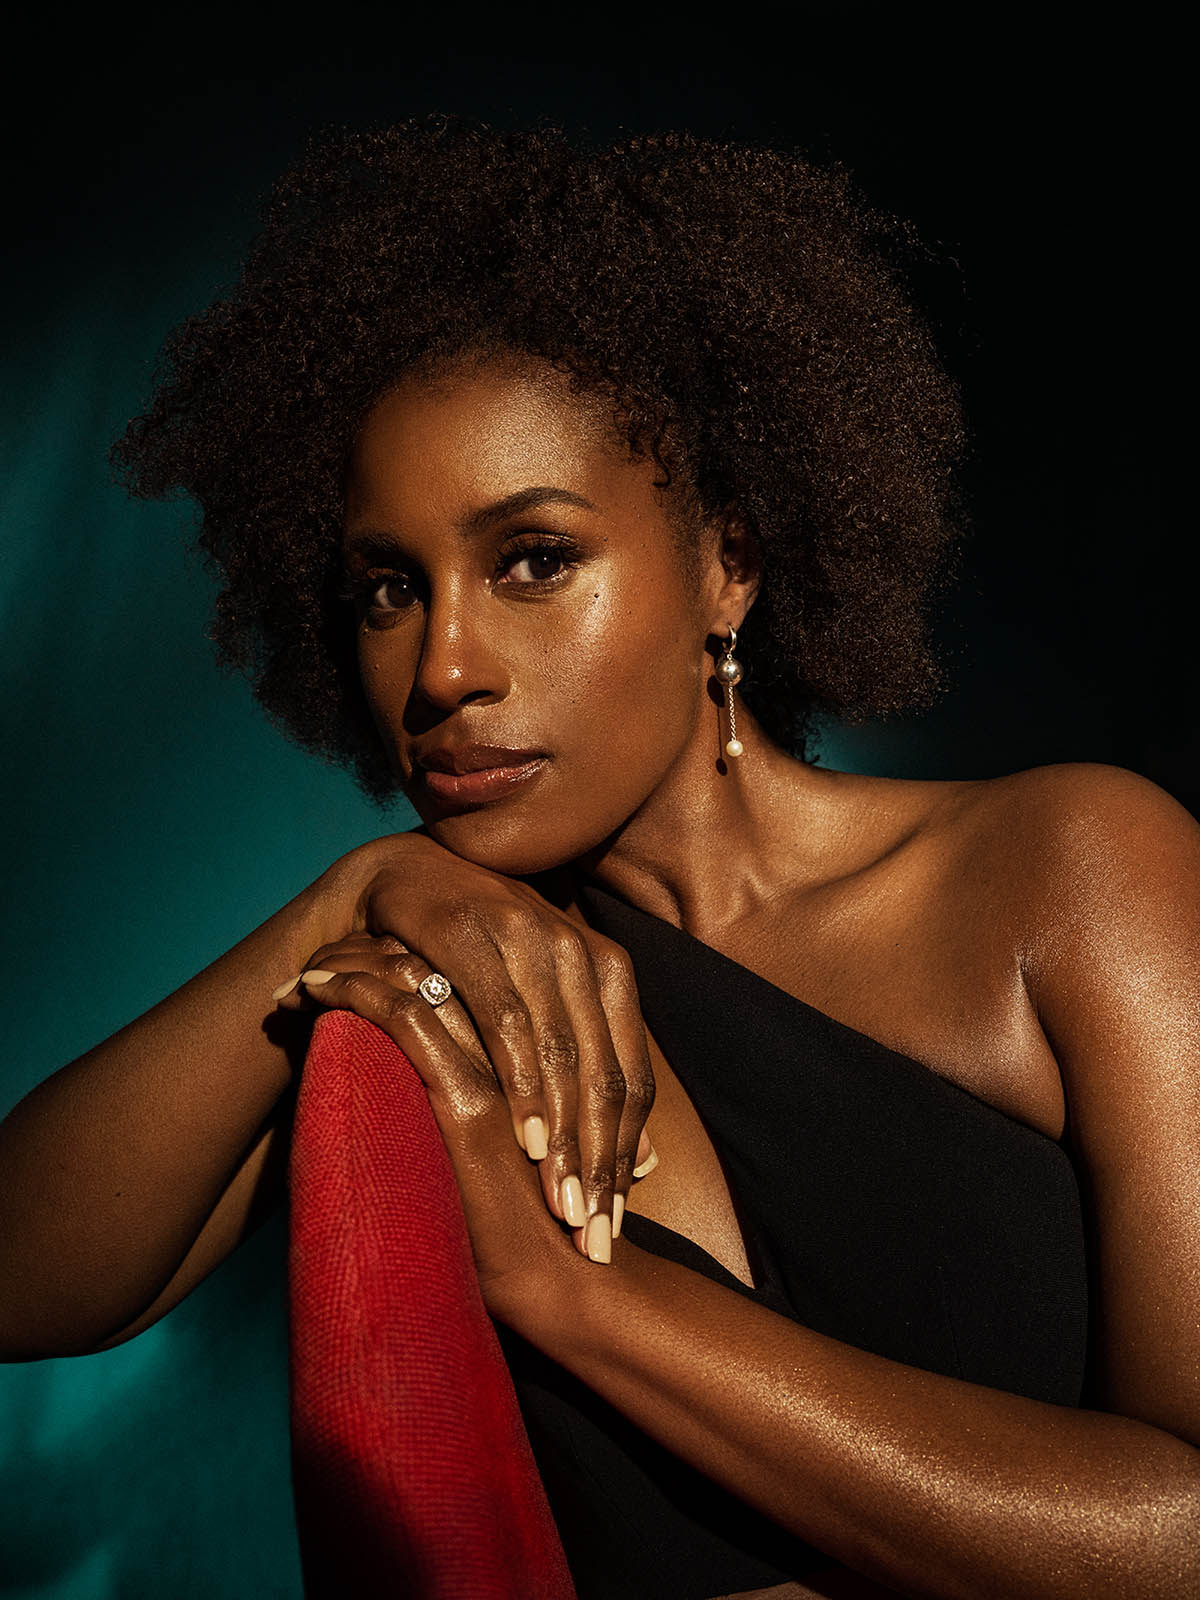 Issa Rae covers Rolling Stone May 2021 by Dana Scruggs